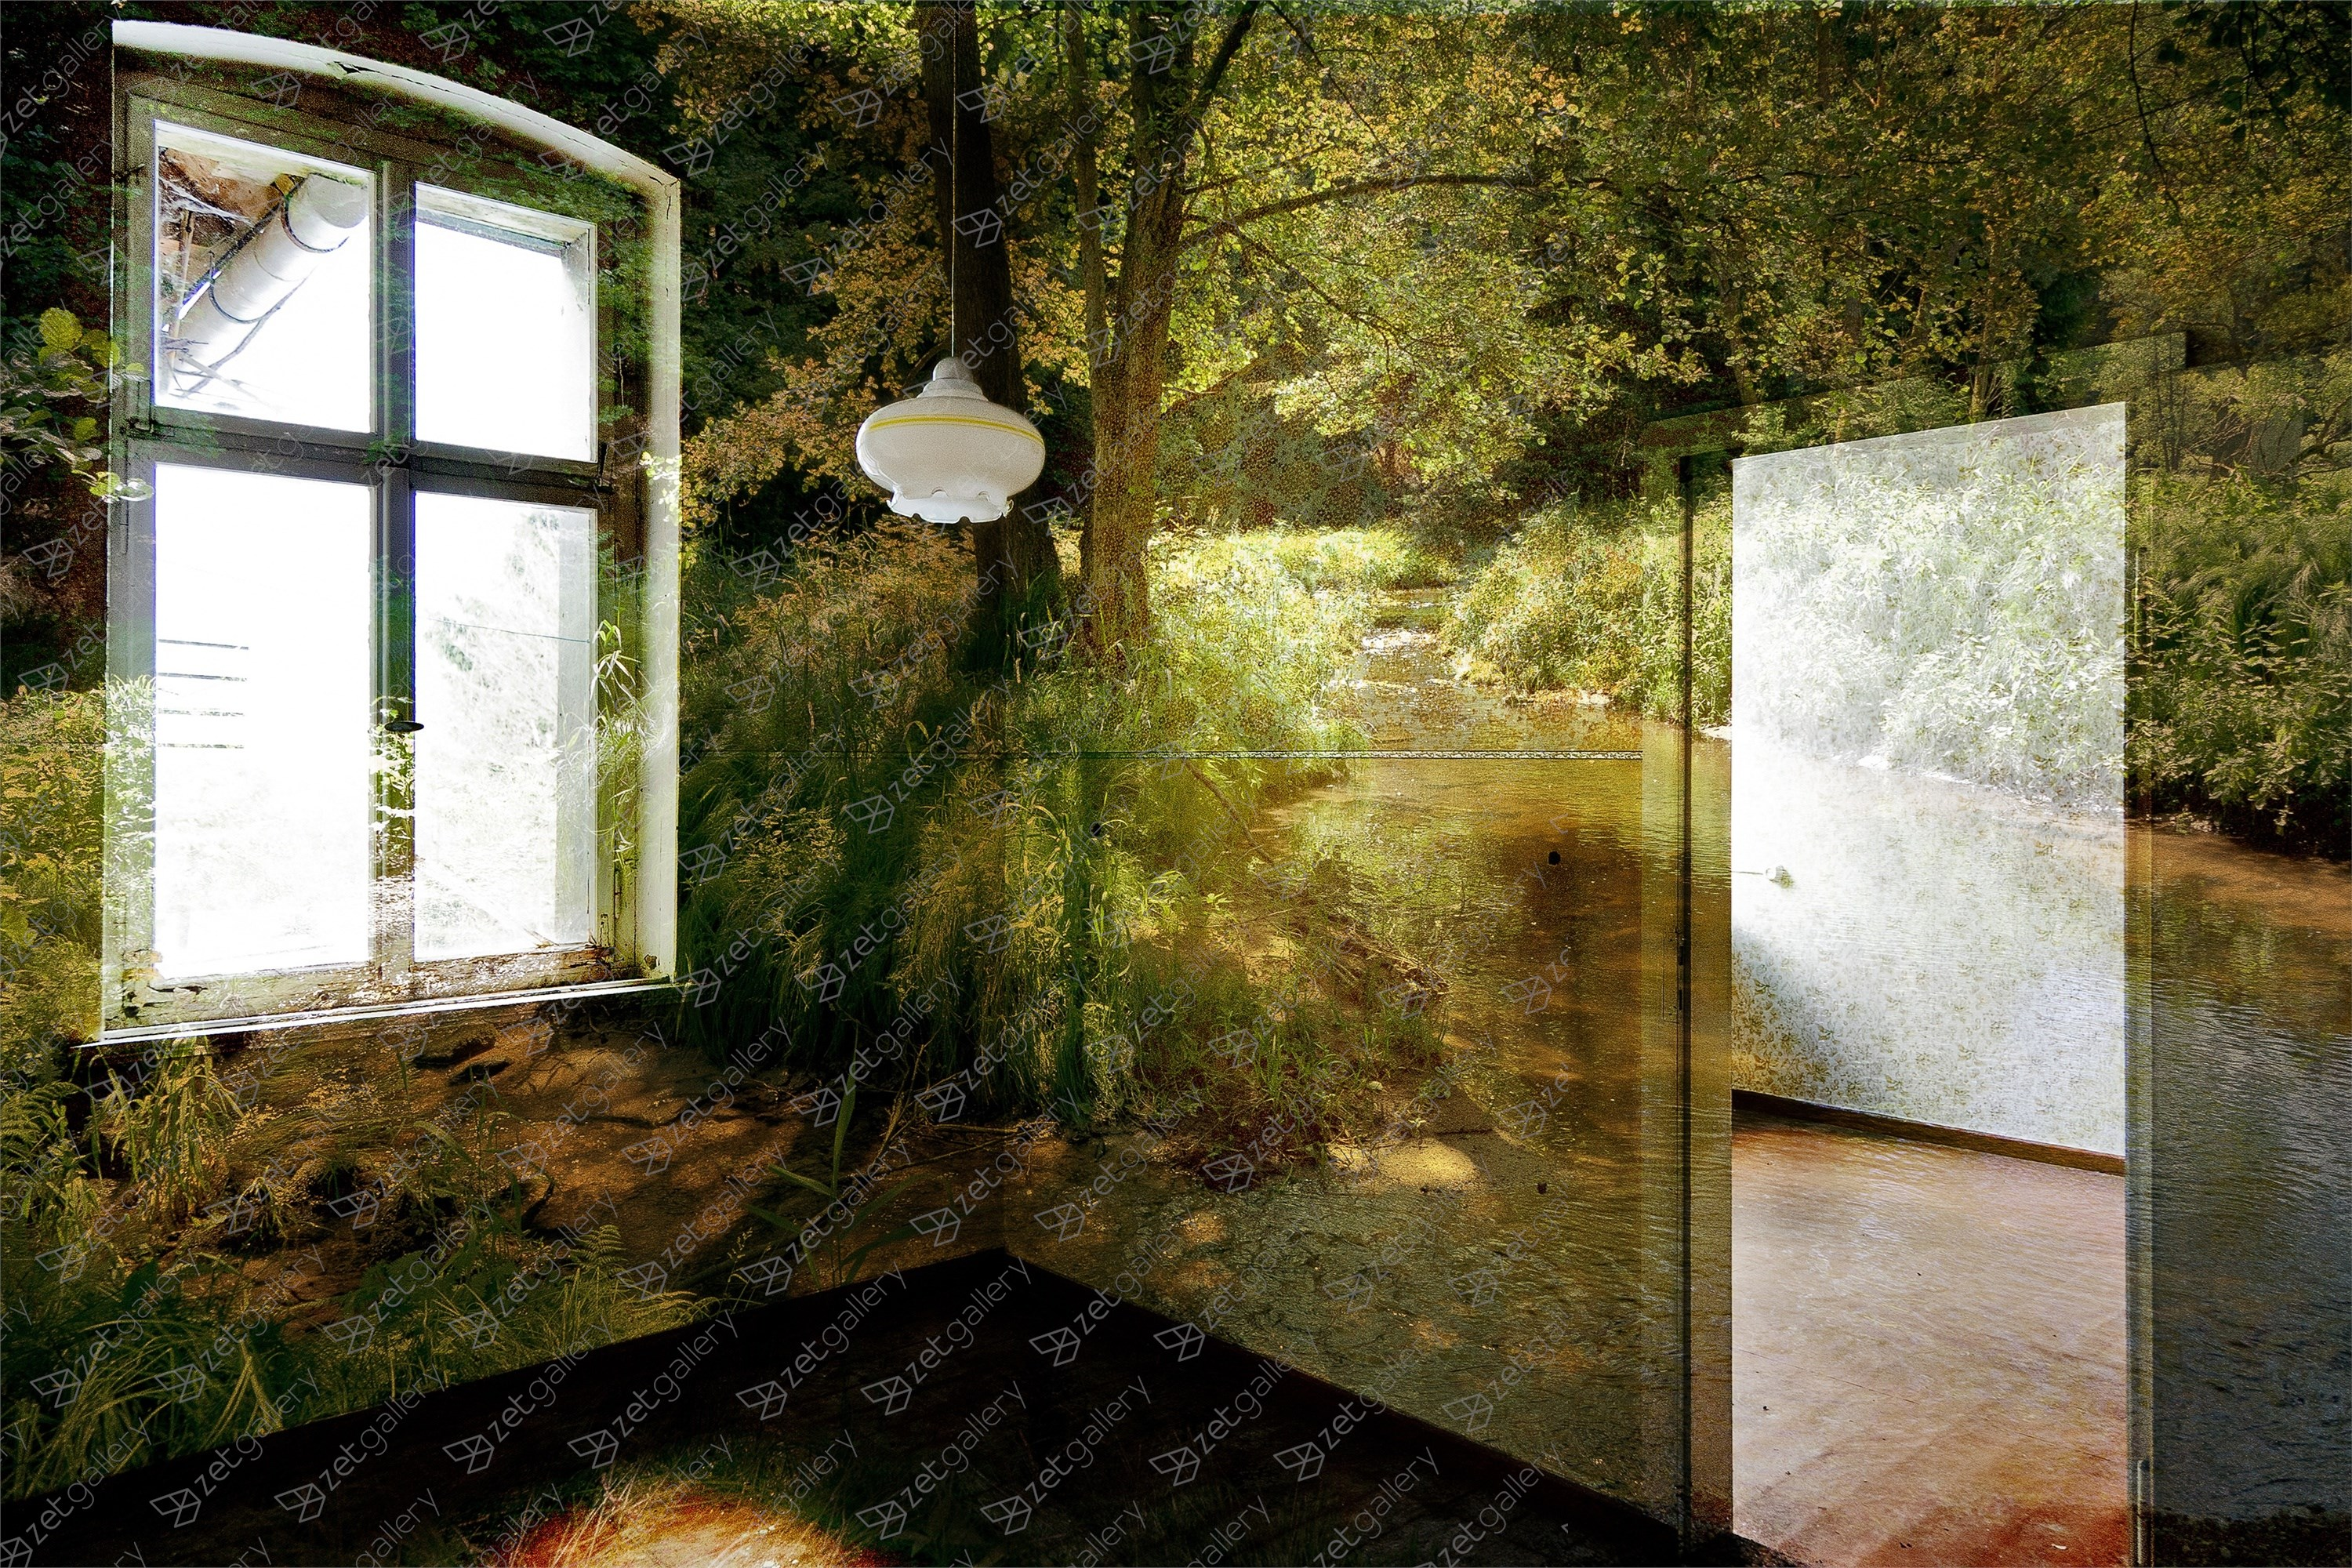 ZWSW #98, original Abstract Digital Photography by Sebastian Weise